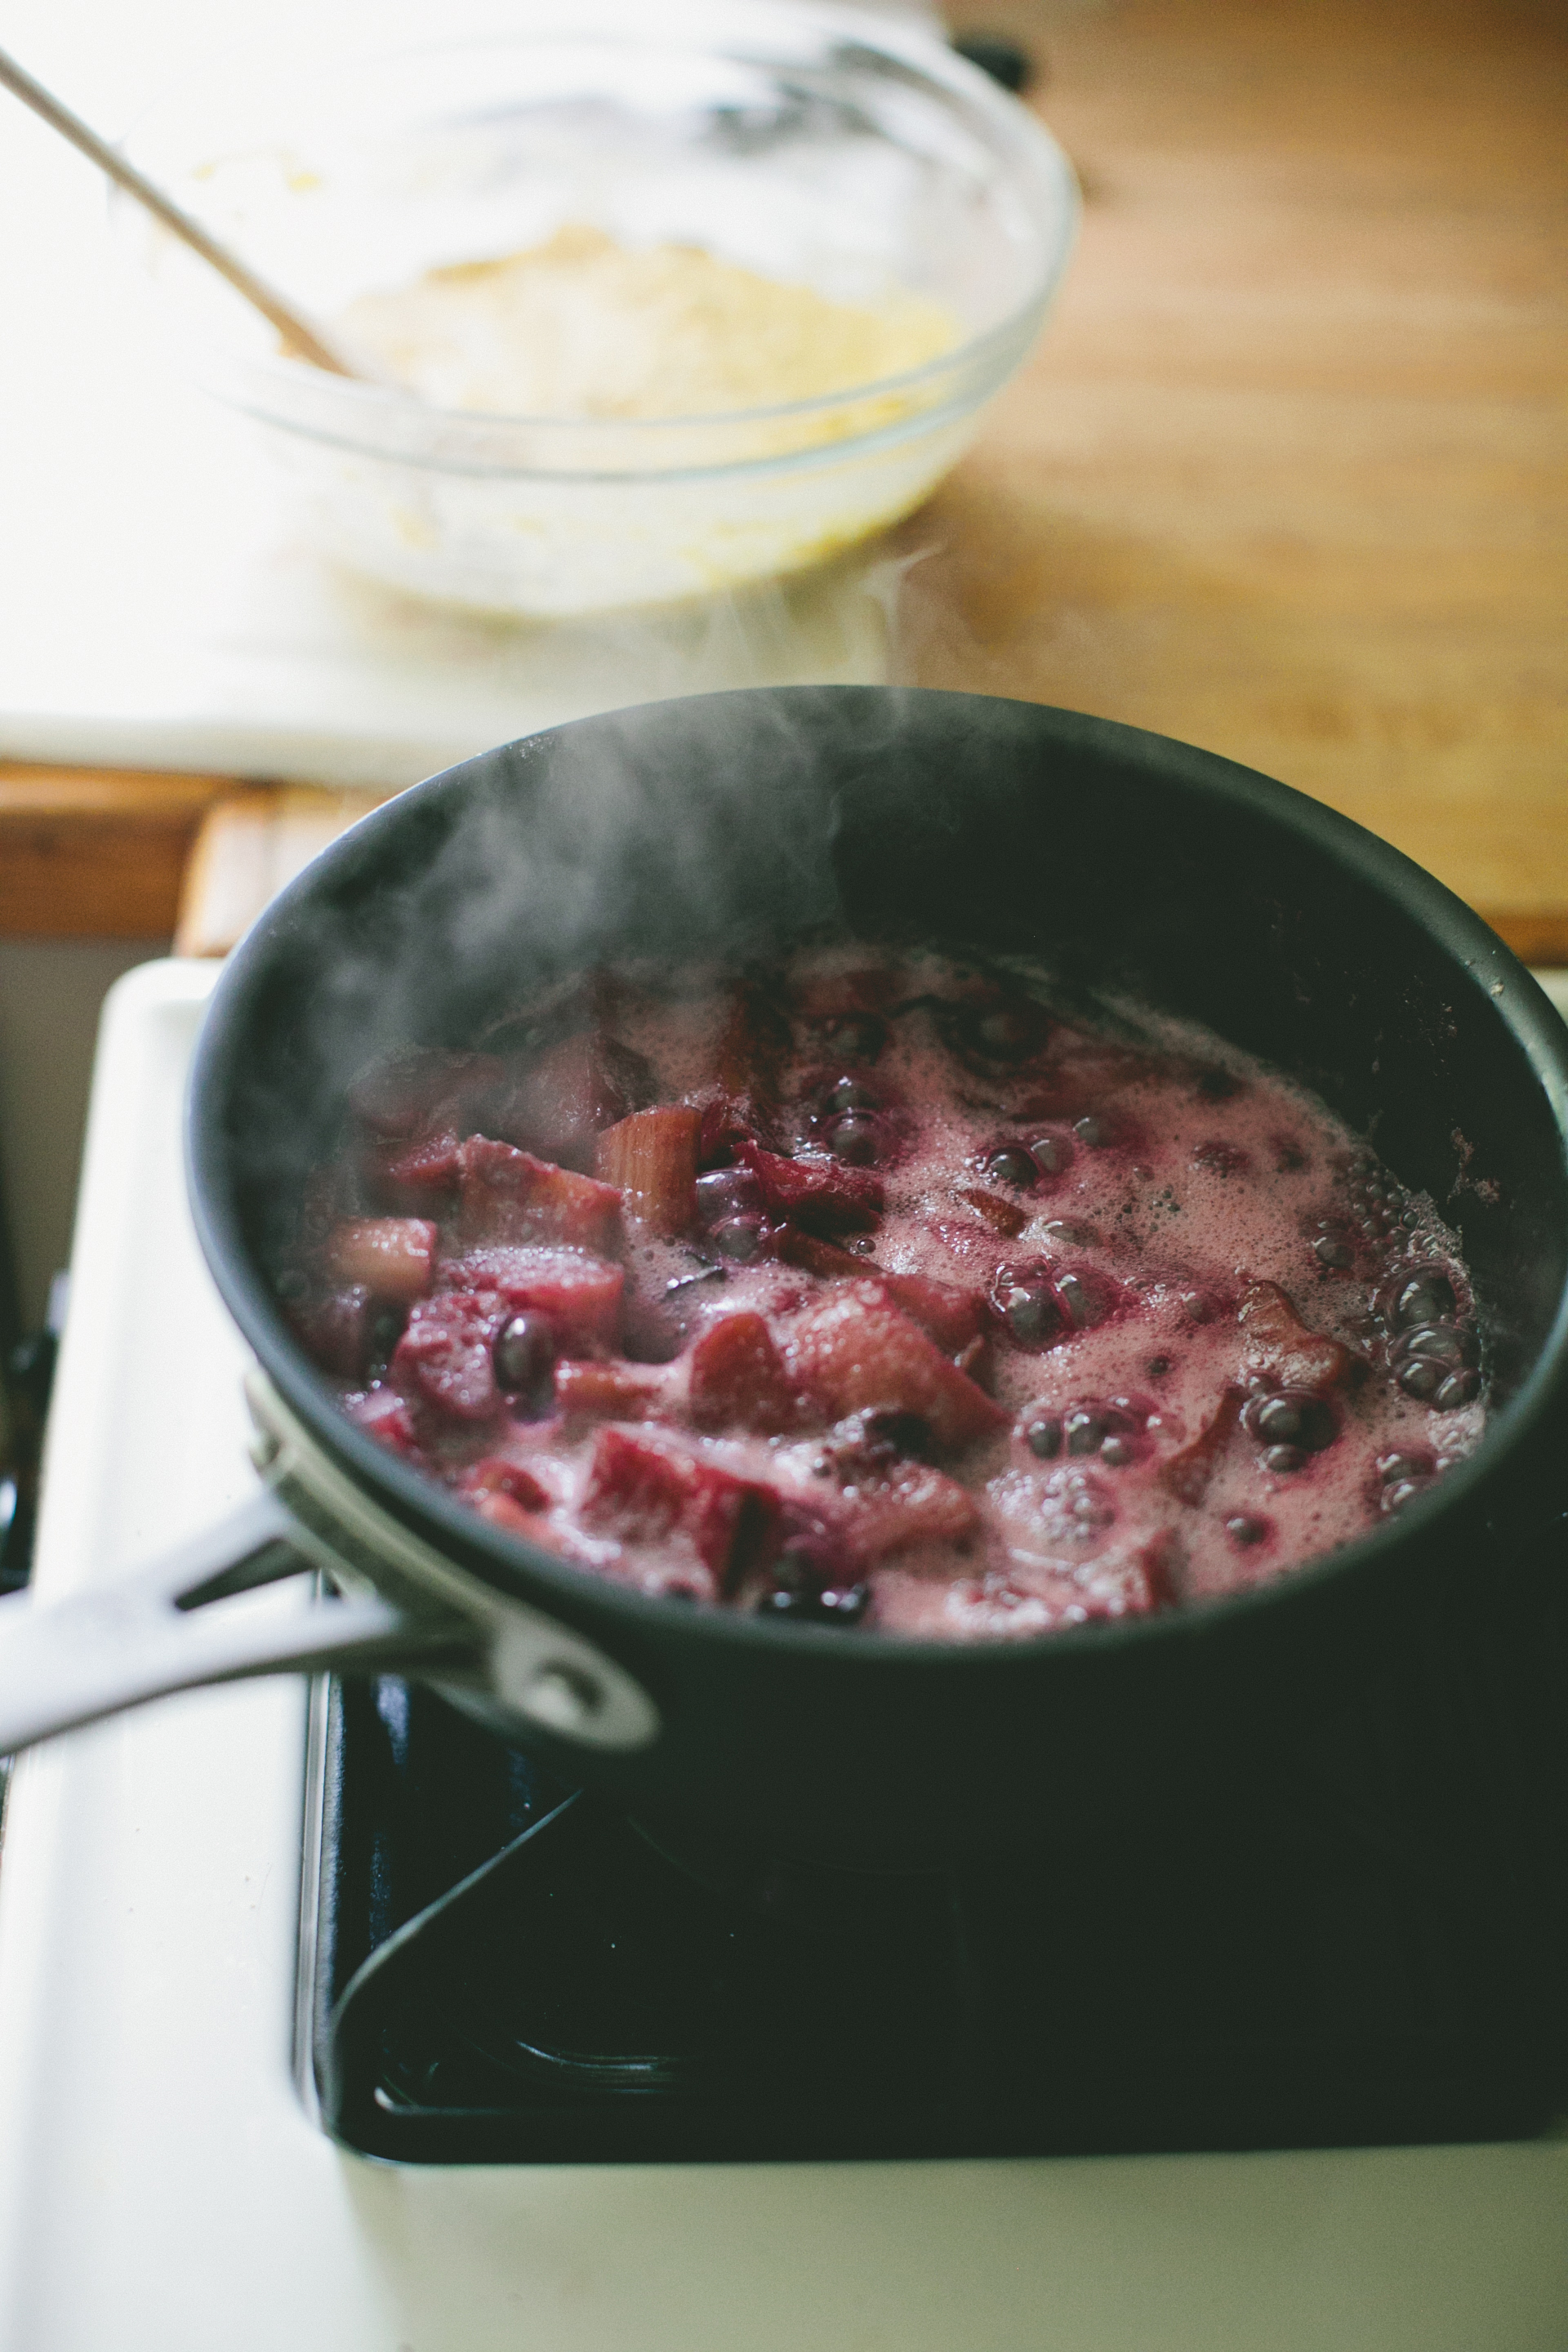 Cornmeal Pancakes + Blueberry-Rhubarb Compote